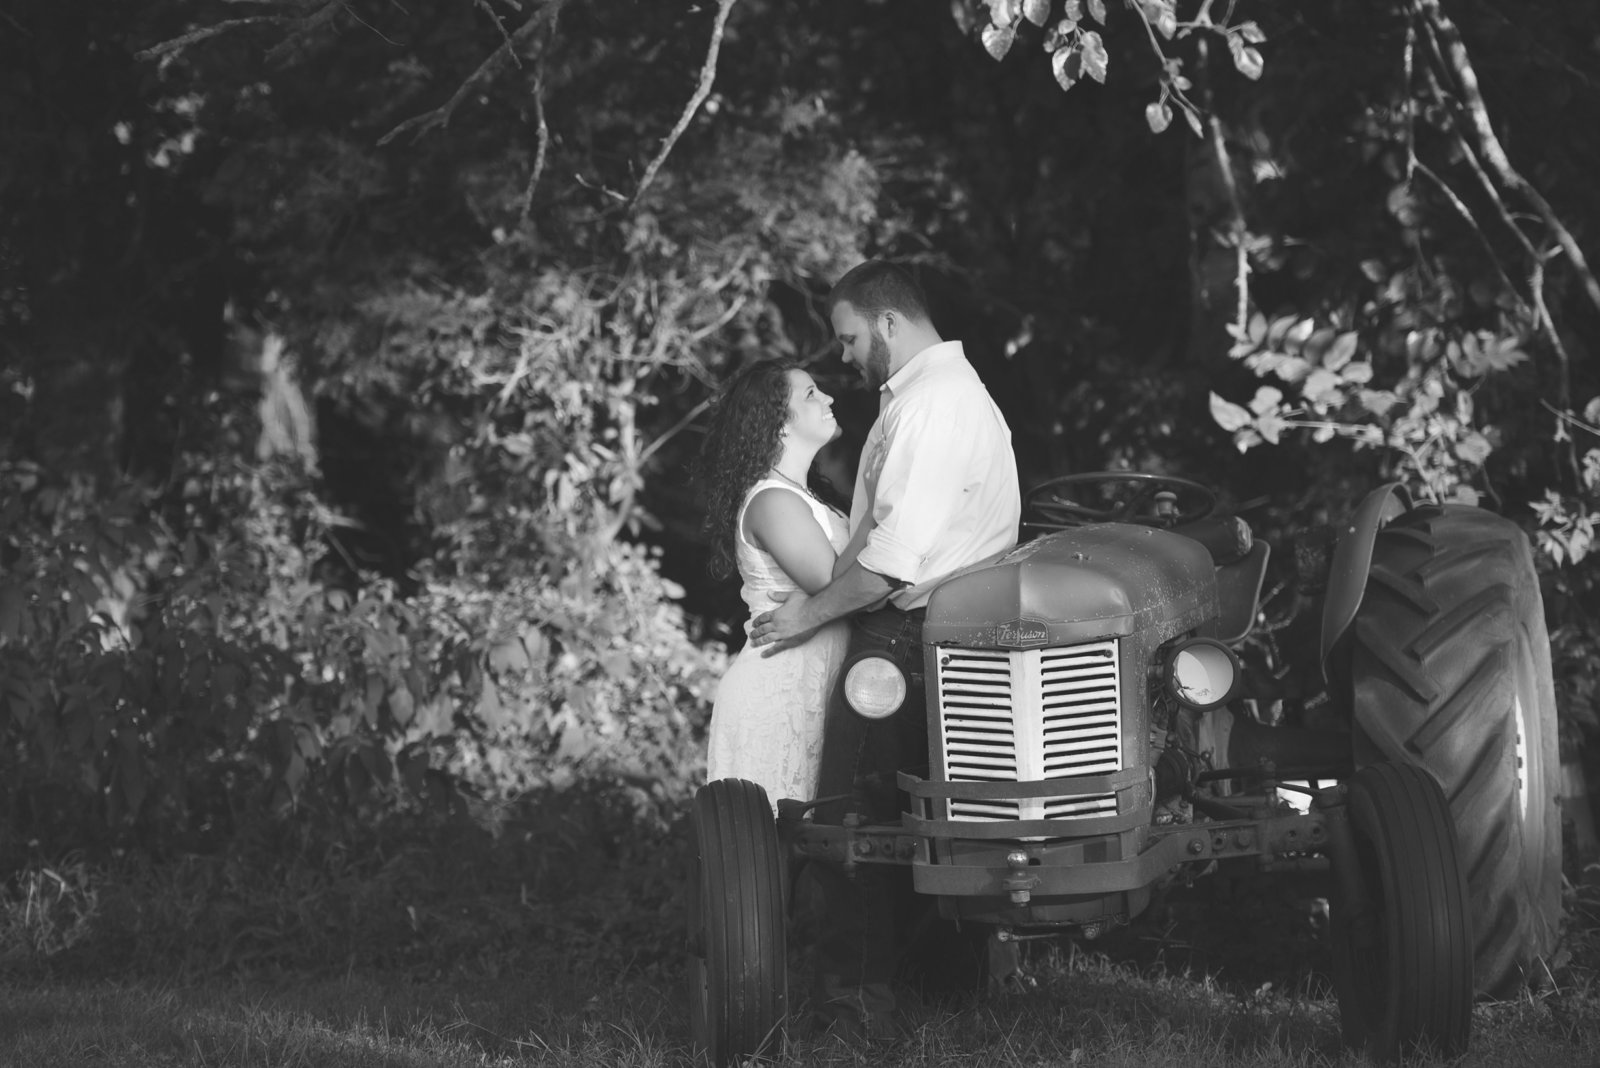 NJ_Rustic_Engagement_Photography062